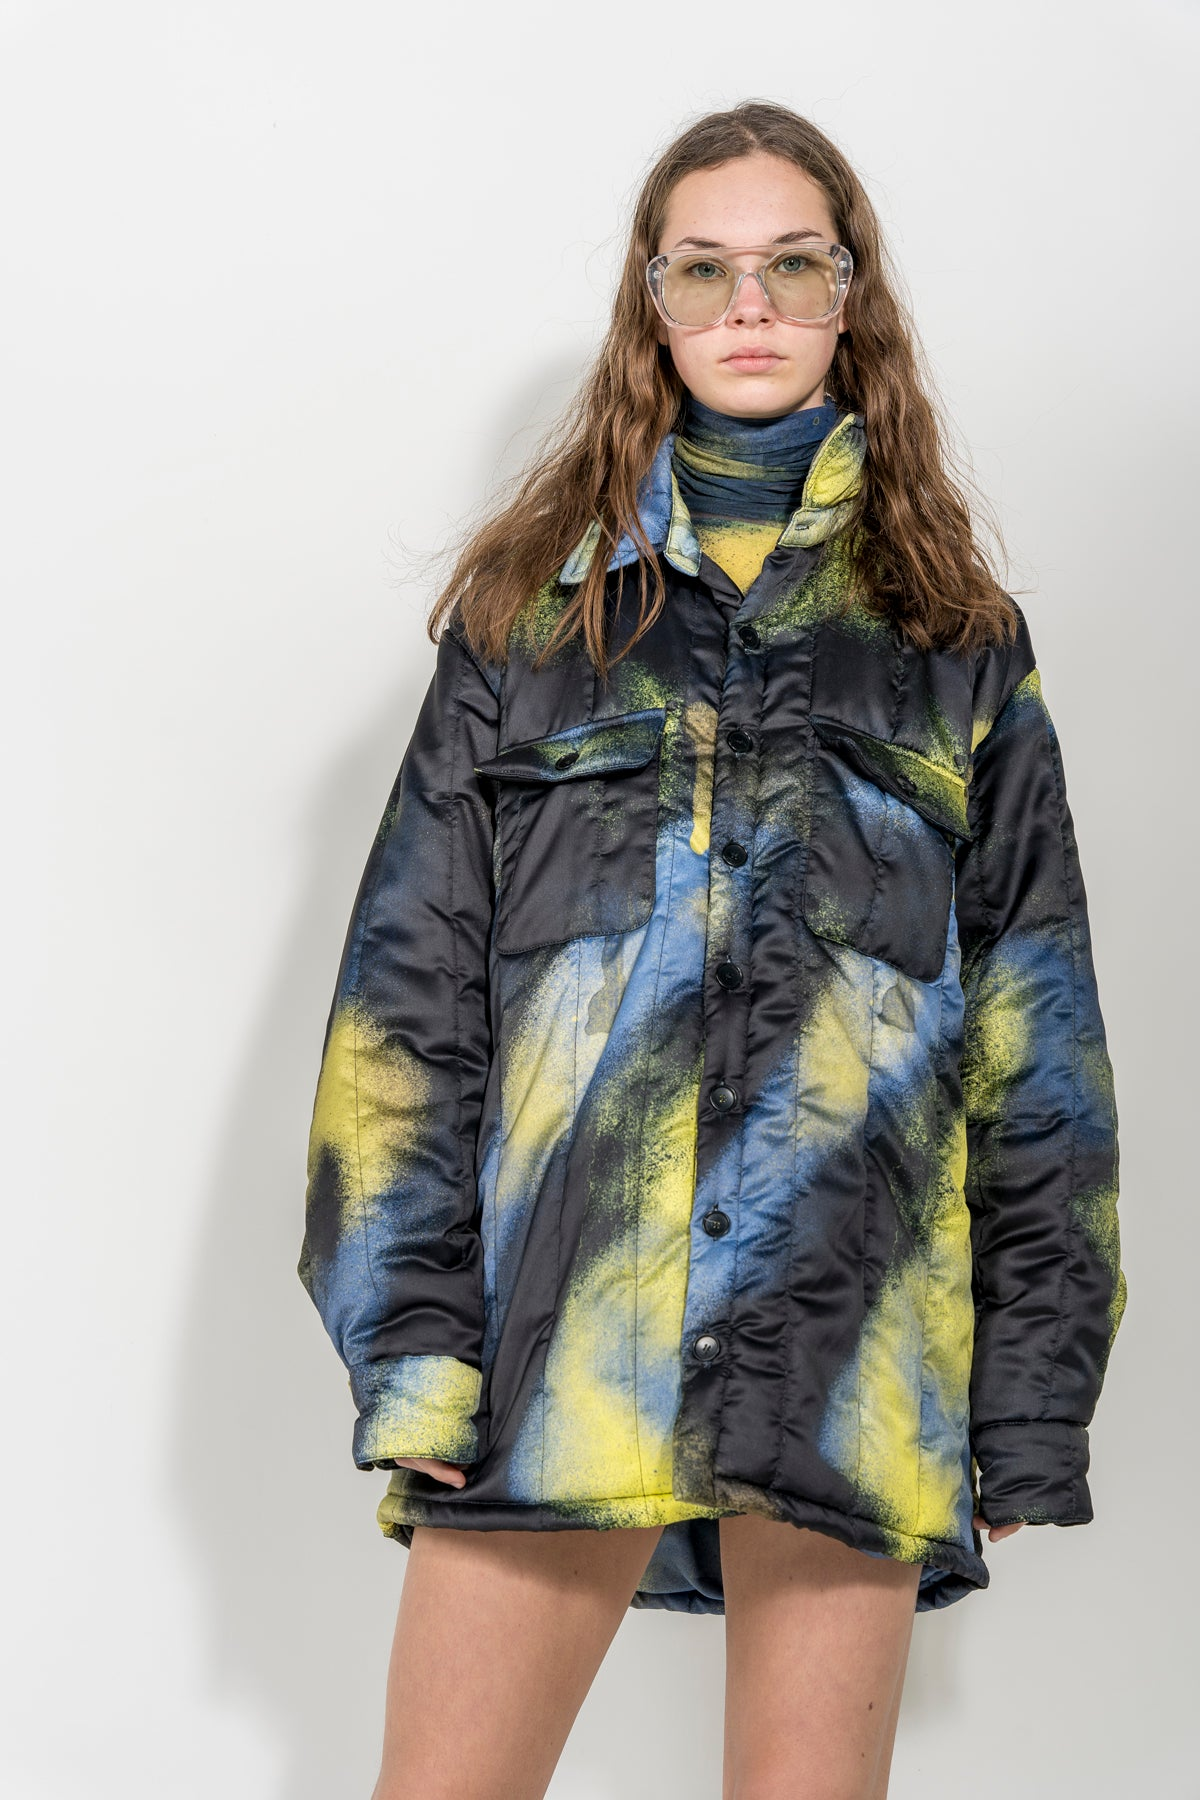 YELLOW AND BLACK PADDED OVERSHIRT marques almeida